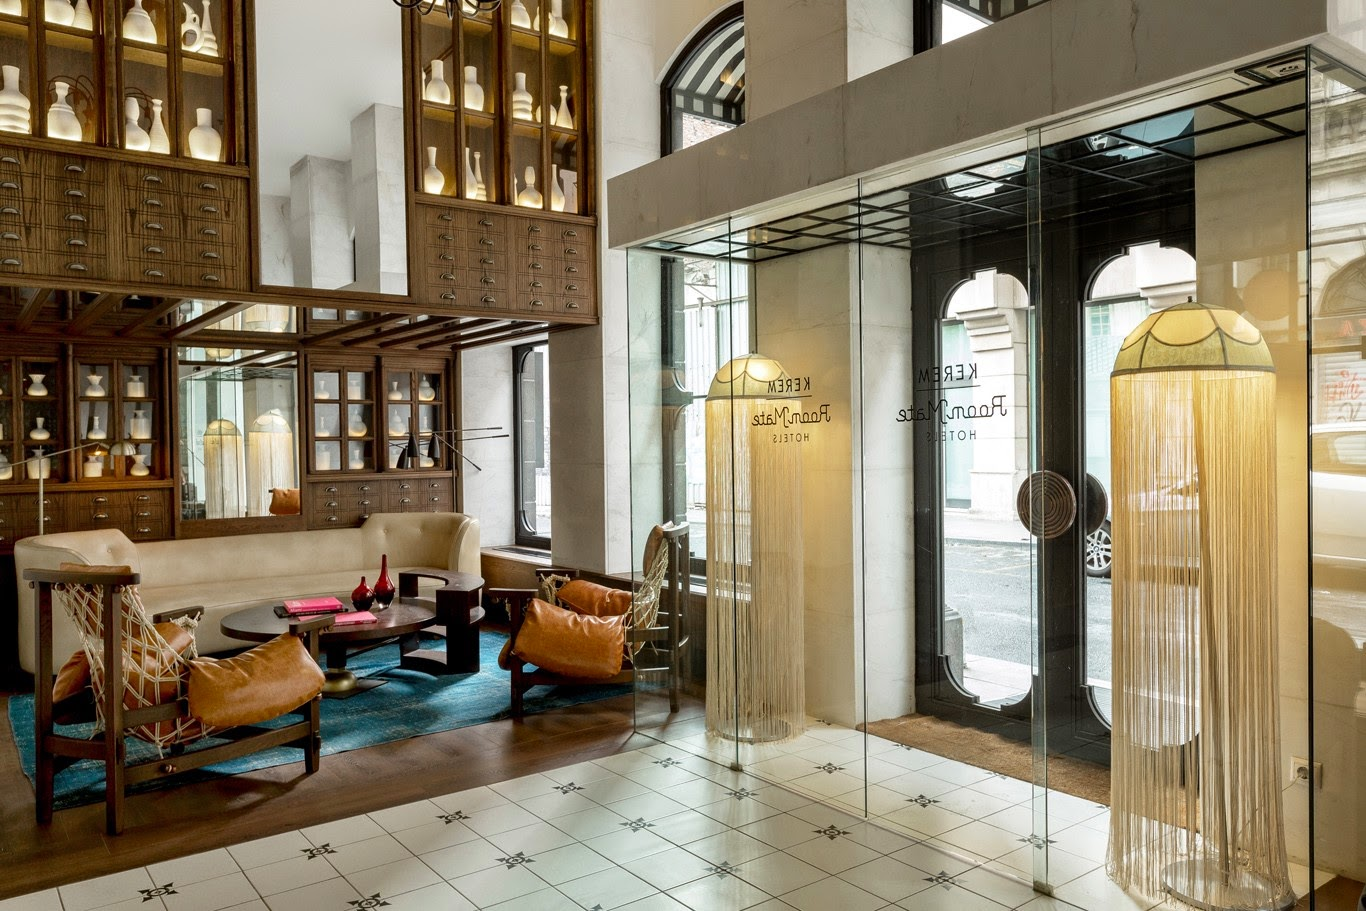 Room Mate kerem hotel in istanbul designed by Lazaro Rosa Violan via belle vivir blog